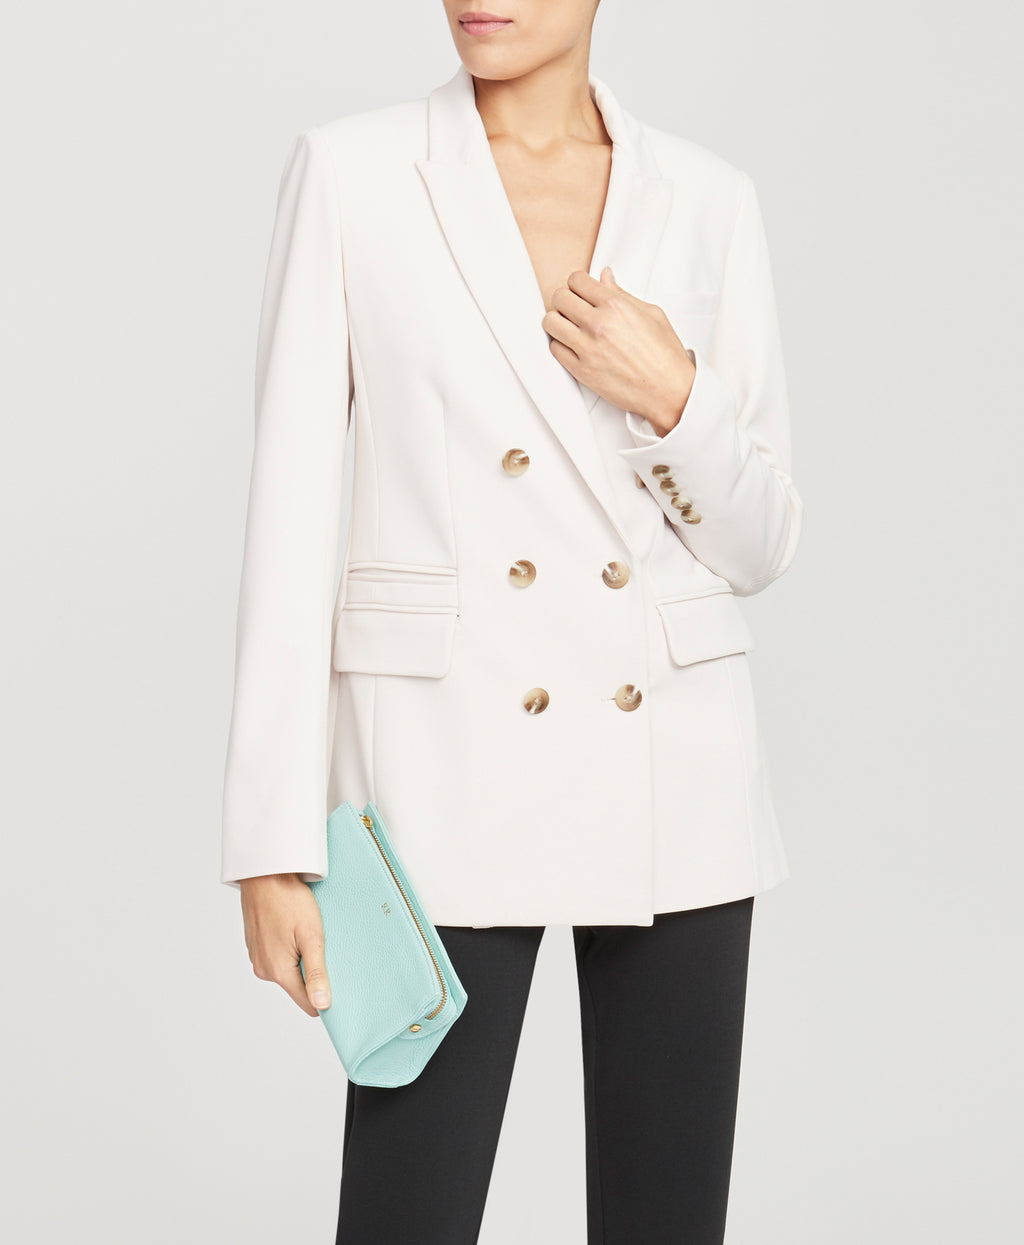 DOUBLE BREASTED BLAZER | DOUBLE BREASTED BLAZER